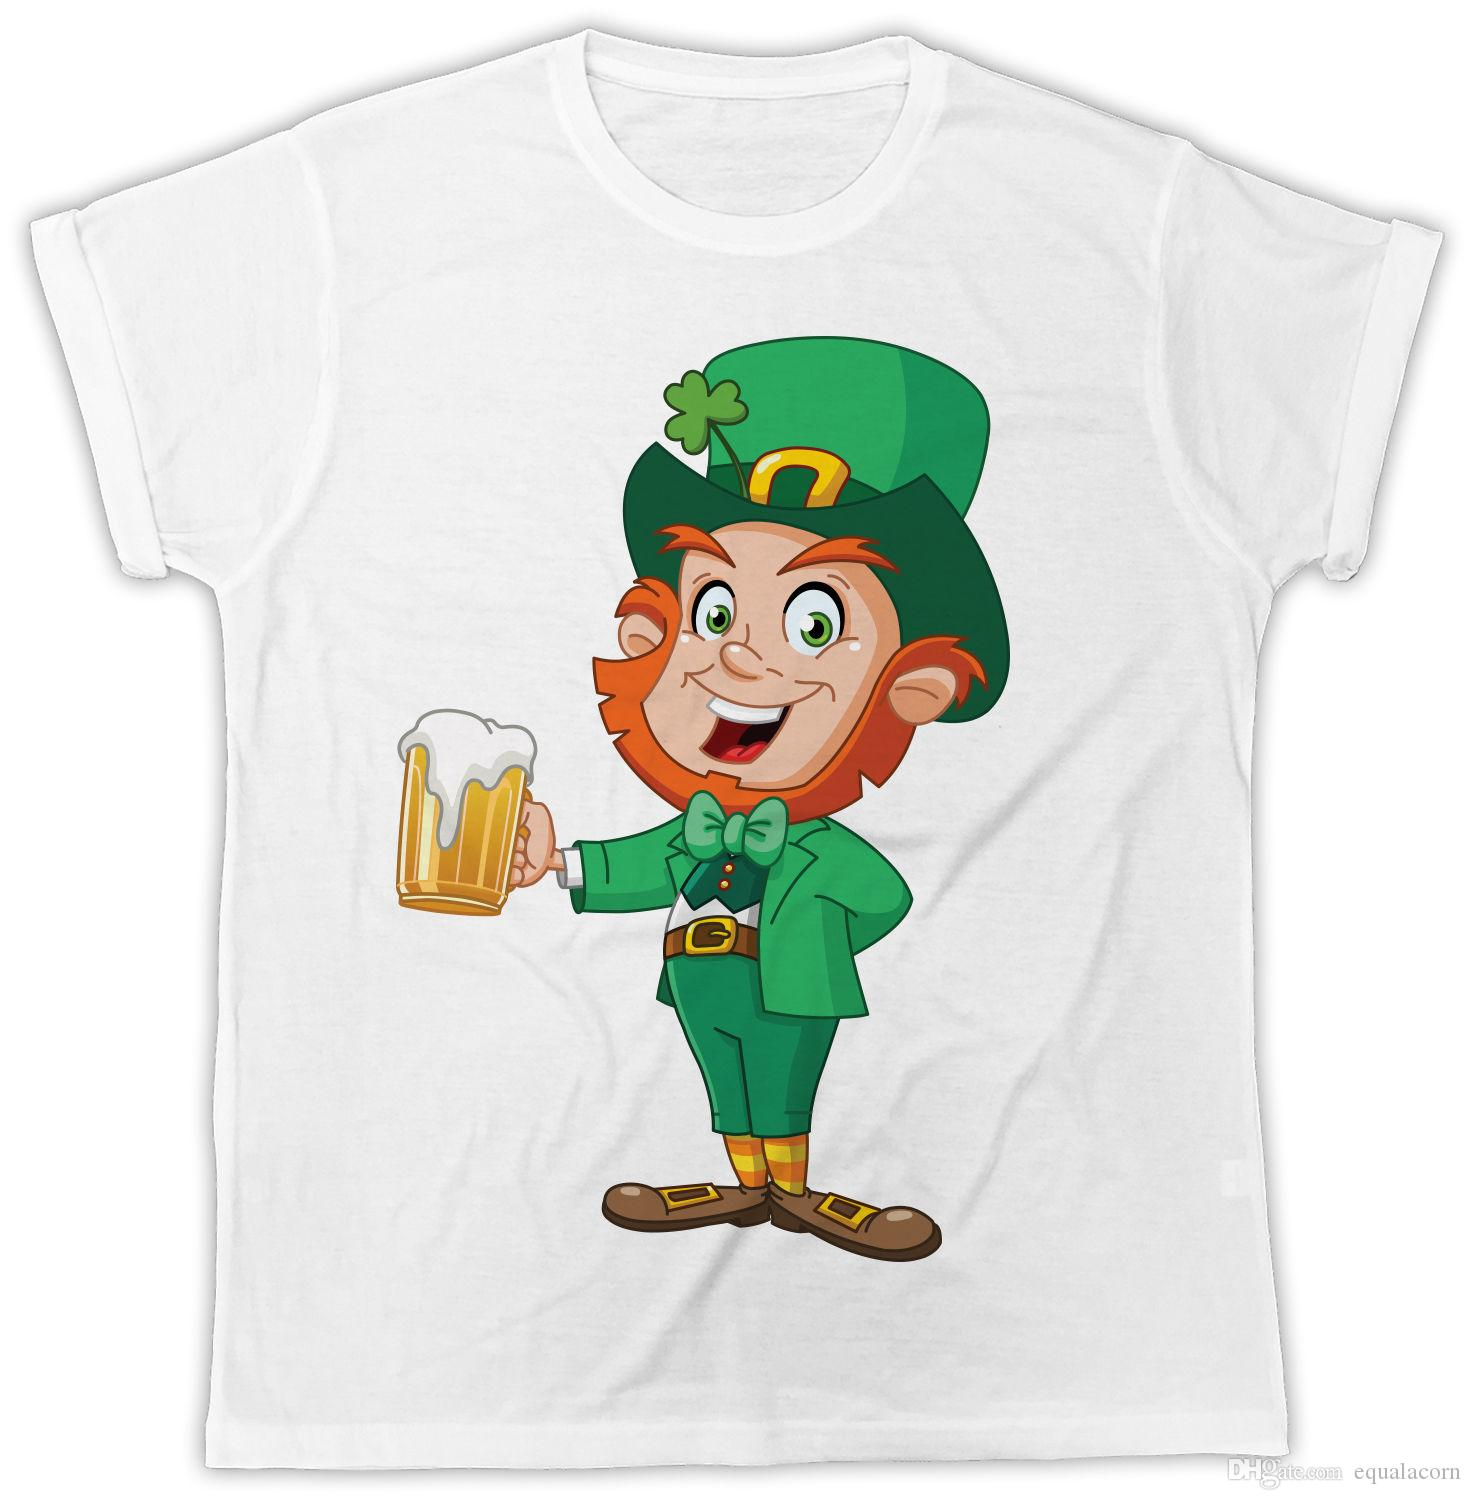 58c840252 ST PATRICKS DAY LEPRECHAUN SHAMROCK GOLD BEER IDEAL GIFT COOL FUNNY T SHIRT  Funky T Shirts Online Shirts Mens From Equalacorn, $10.3| DHgate.Com